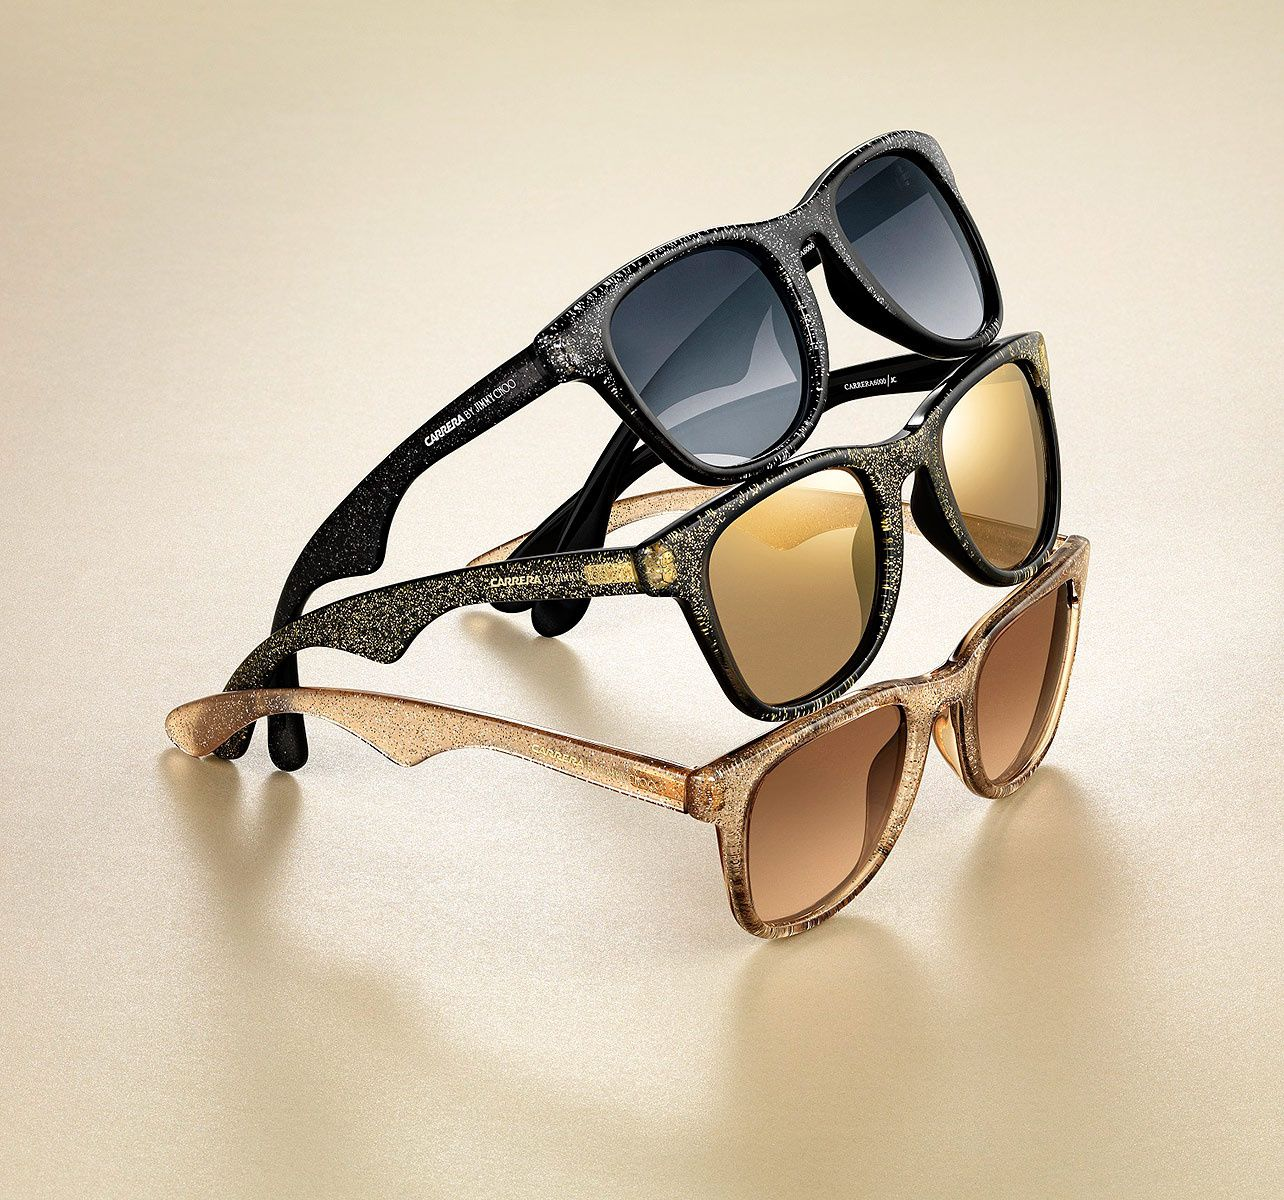 Lentes Carrera en colaboracion con Jimmy Choo   GLASSES LENTES SUN ... 2add0834fb